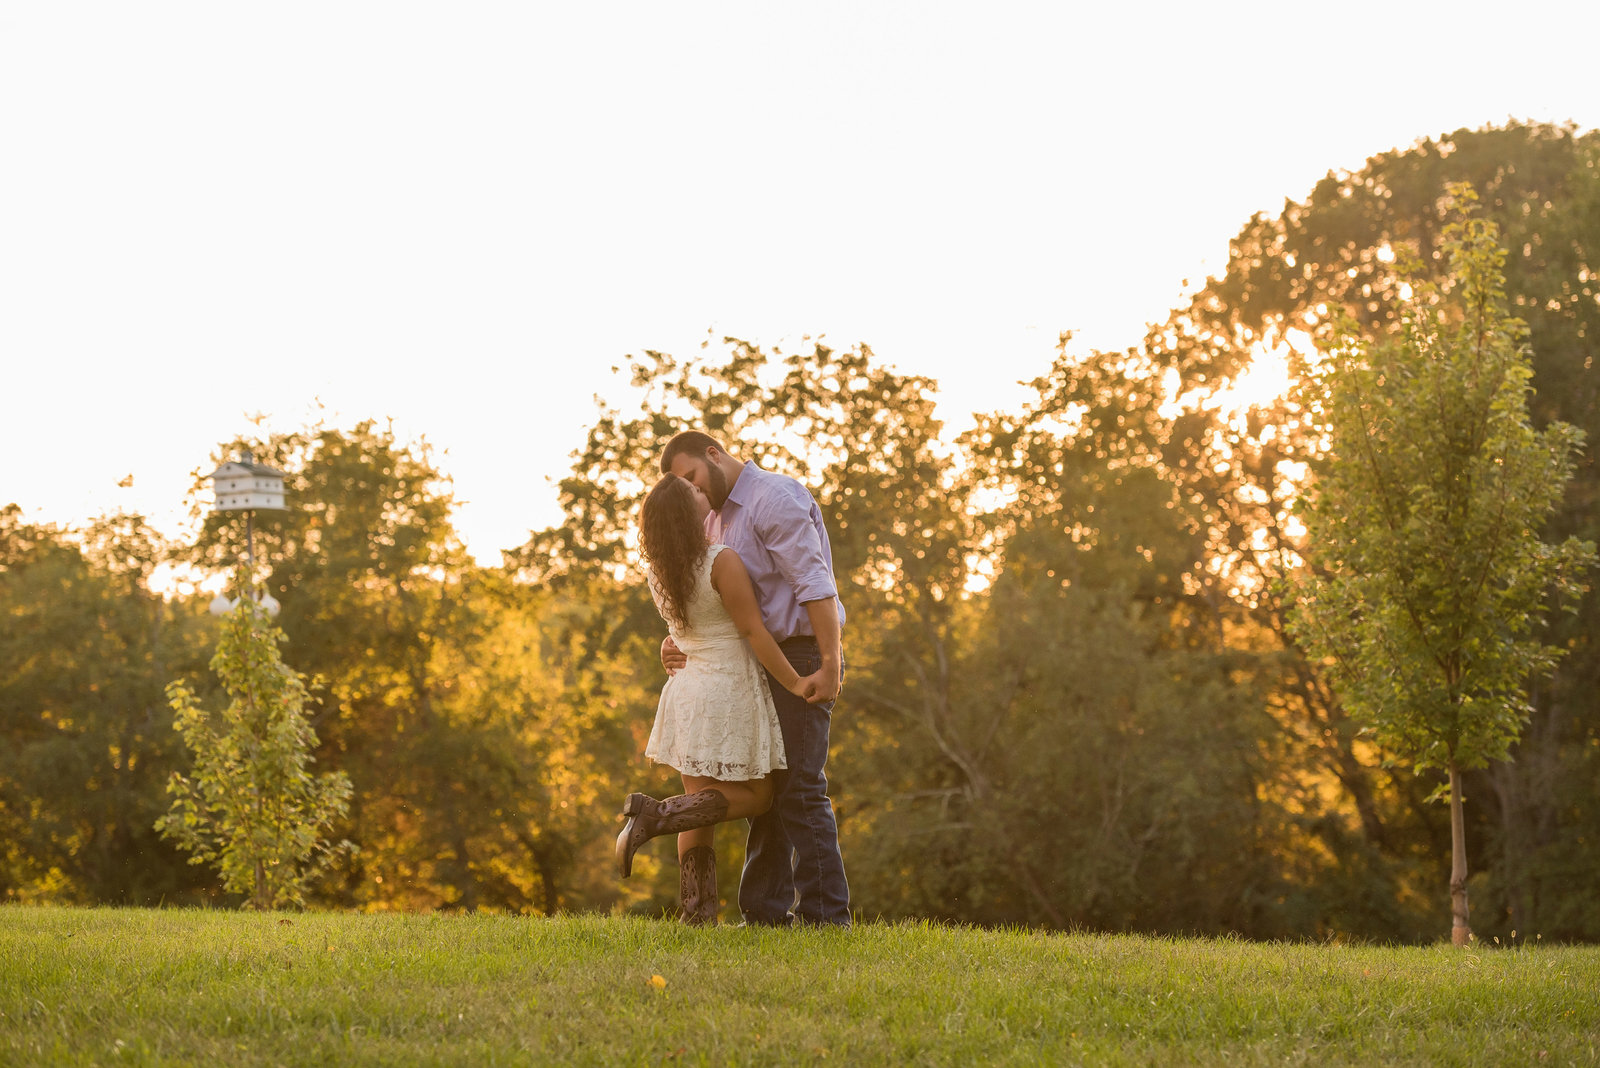 NJ_Rustic_Engagement_Photography155